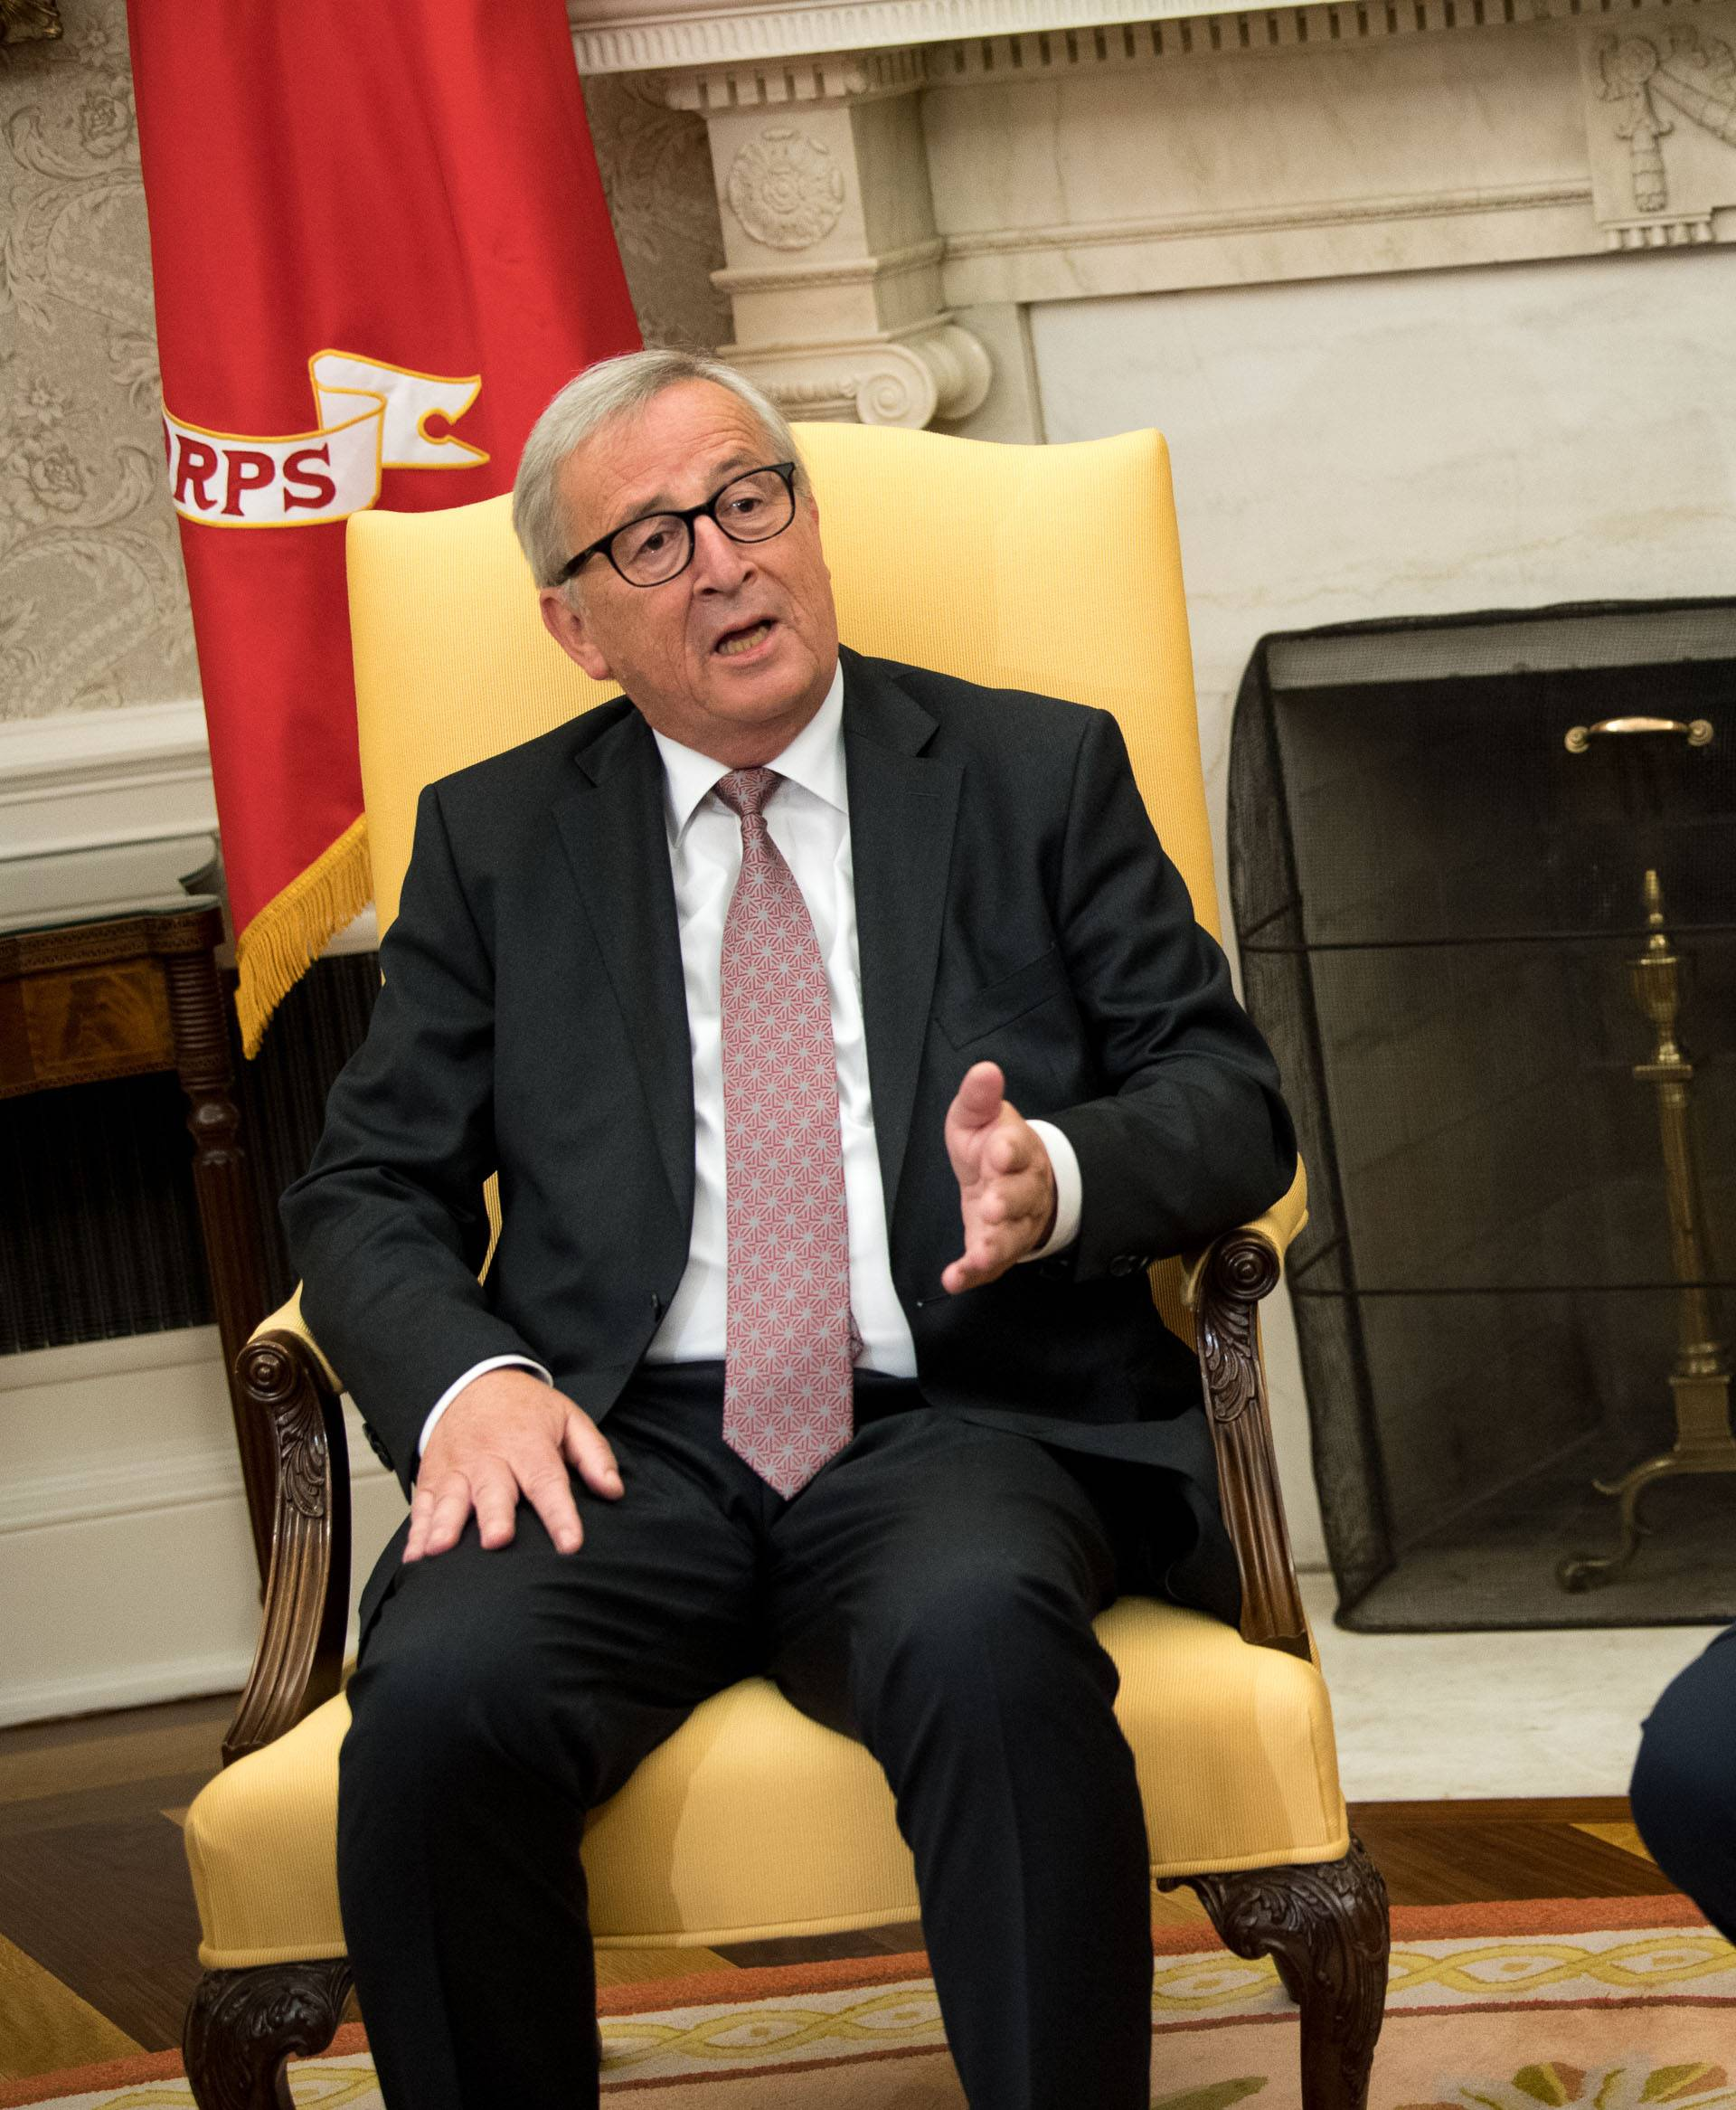 President Trump meets with President of the European Commission Jean-Claude Juncker at the White House